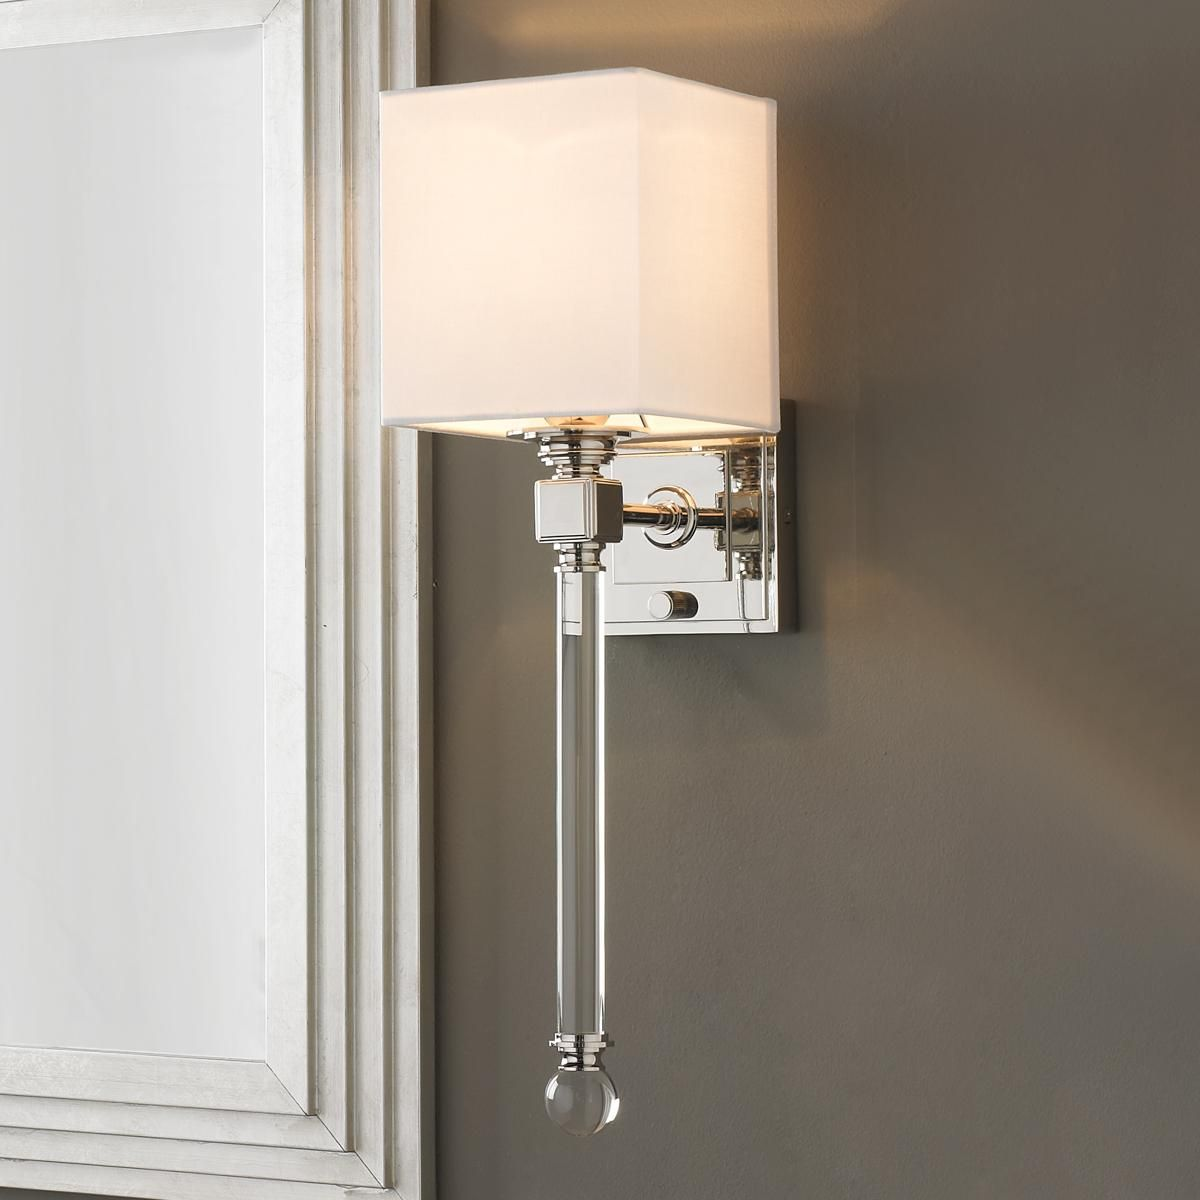 chrome sconce shades schoolhouse seeded light products glass of bathroom